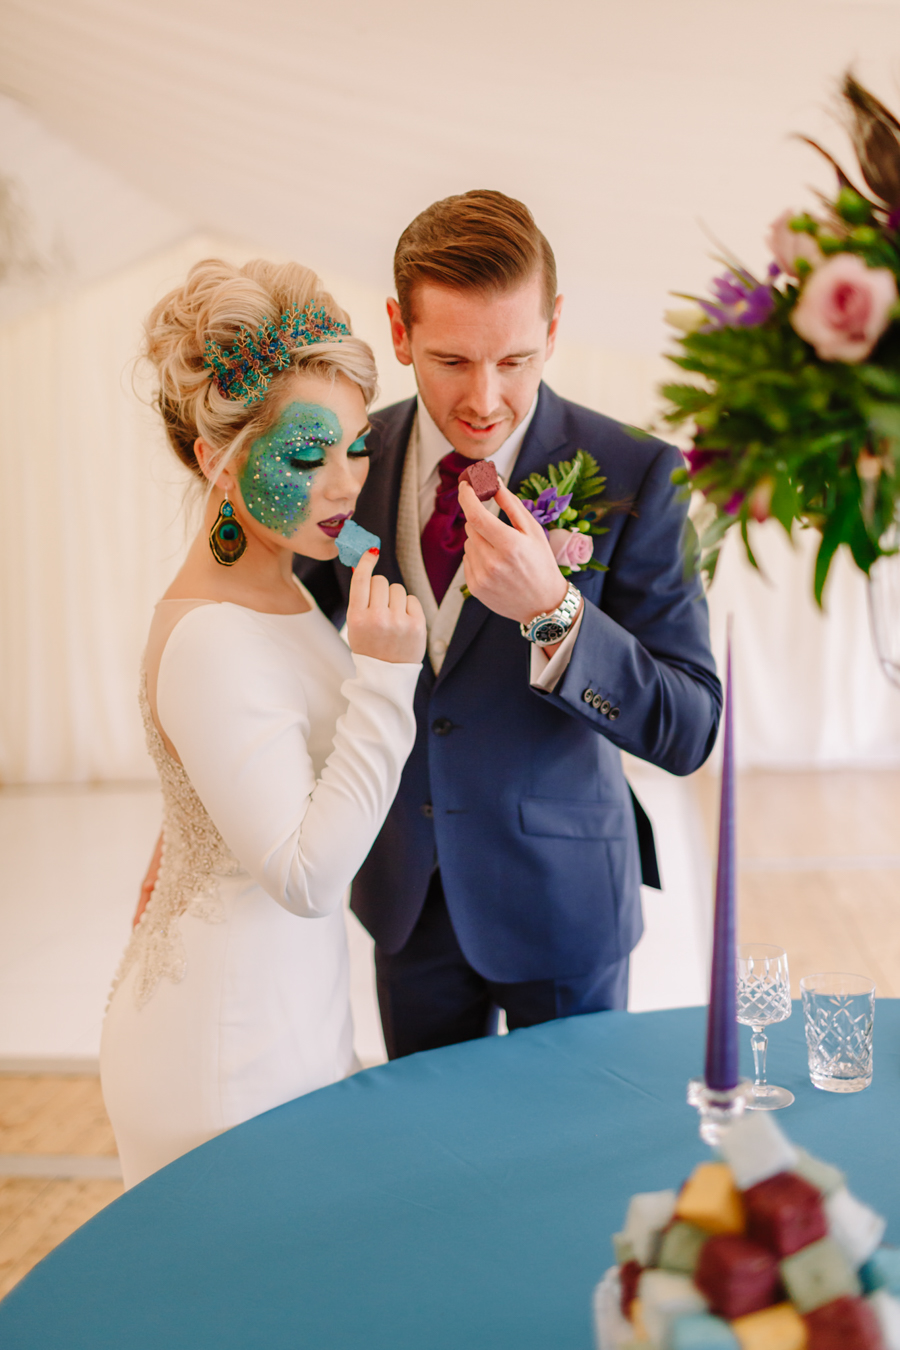 Teal and purple peacock wedding ideas by planner Karen Luxford, image by Sarah Wayte Photography (17)